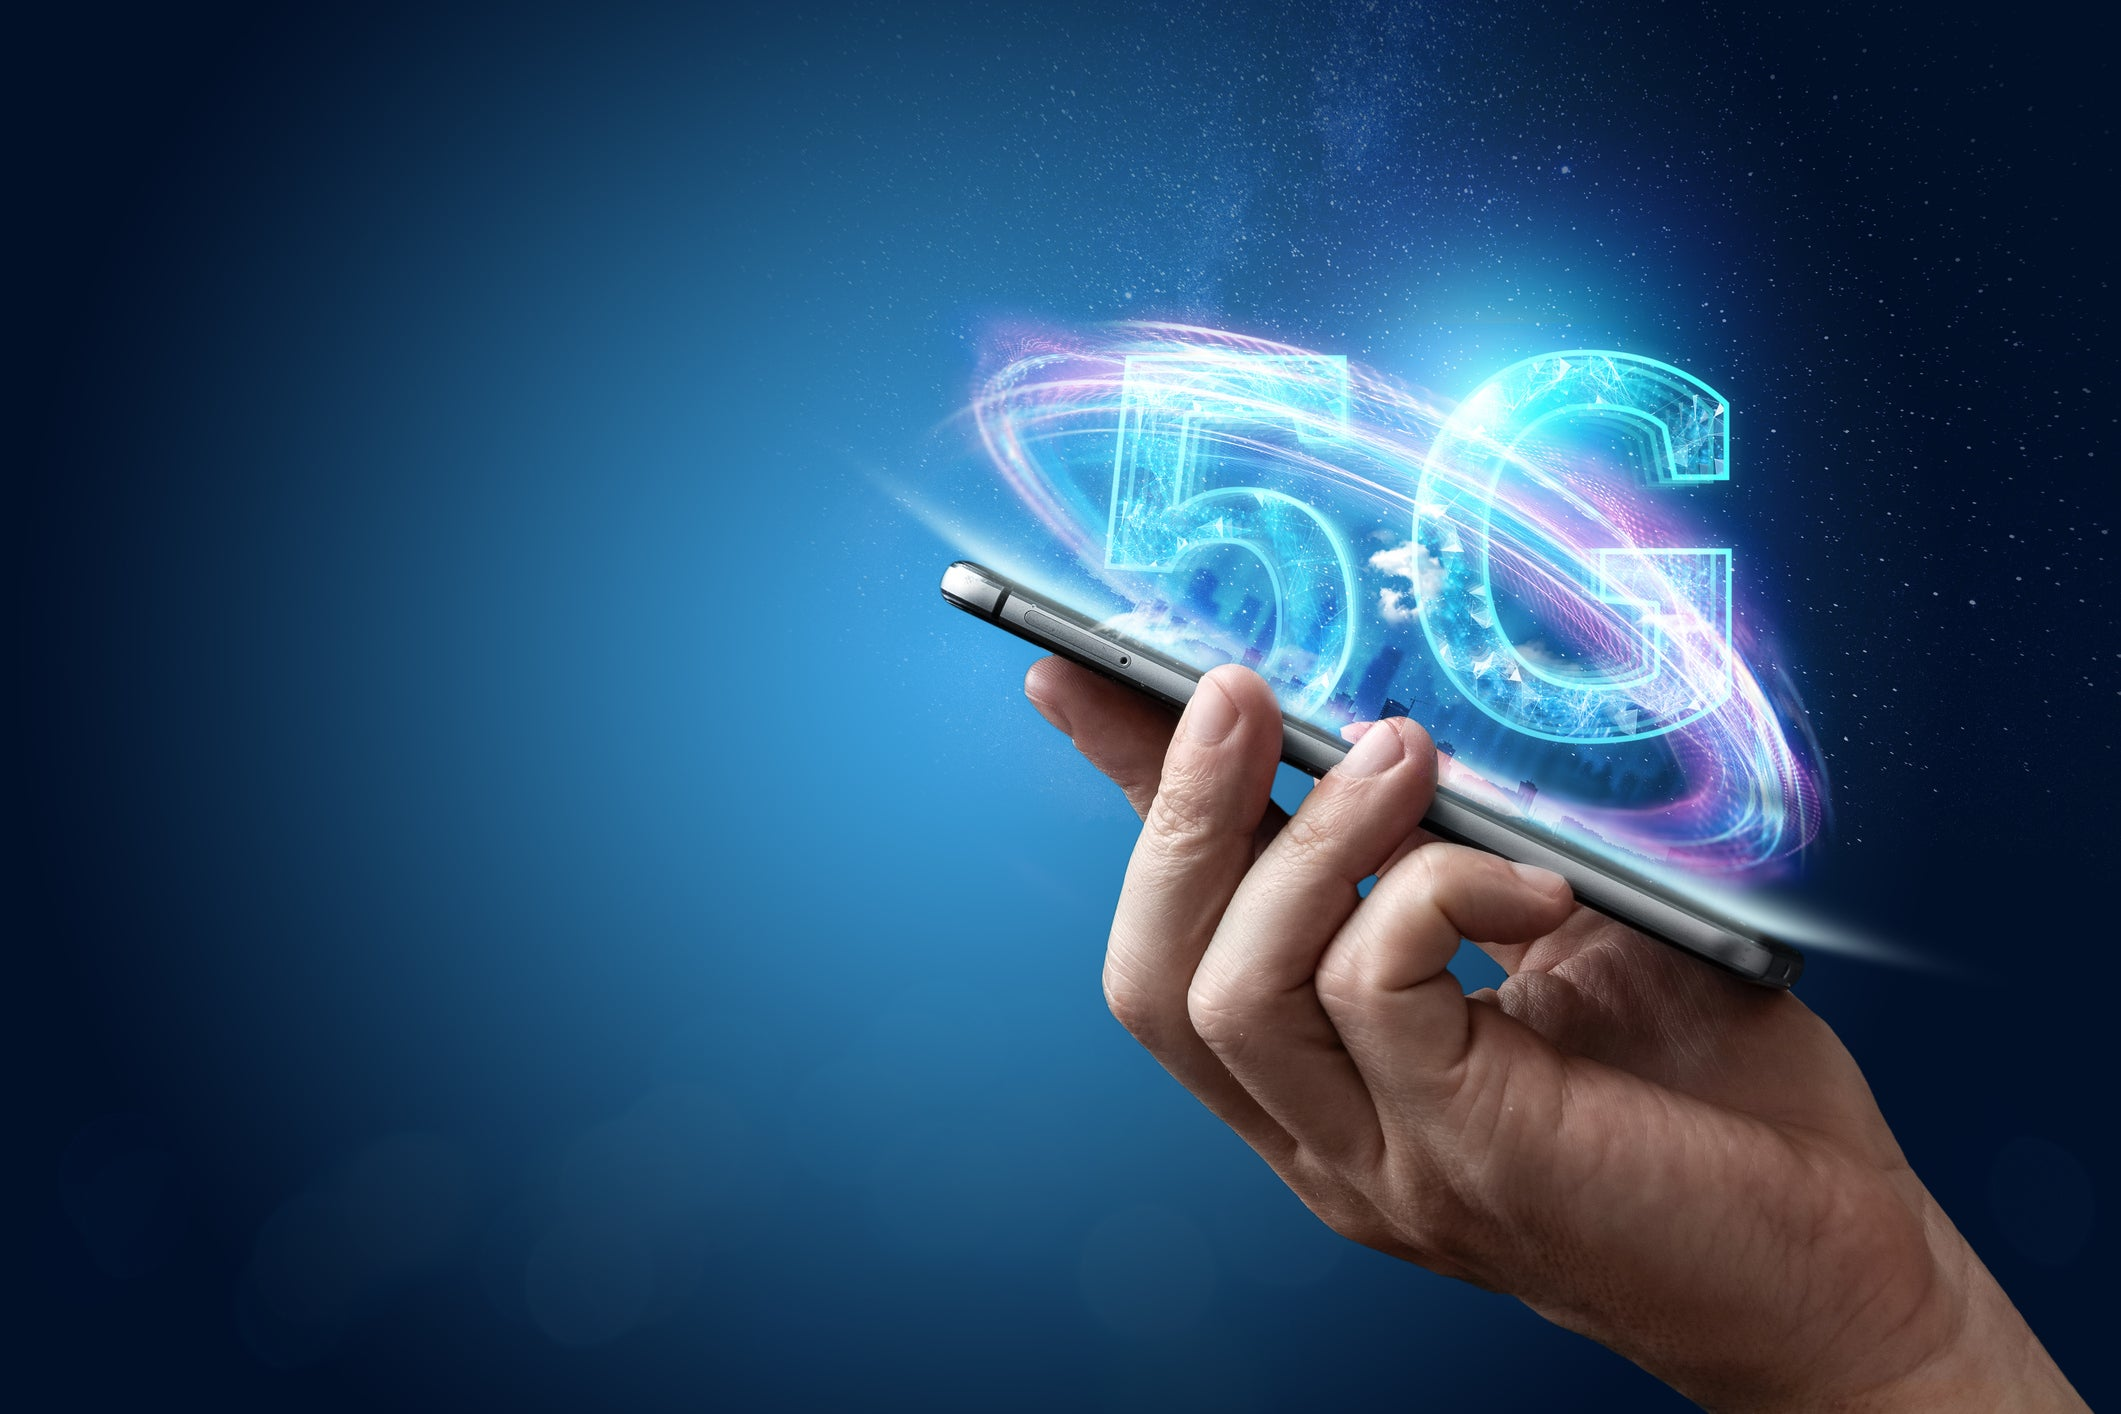 Buy These Top 5G Stocks Before It Gets Too Late